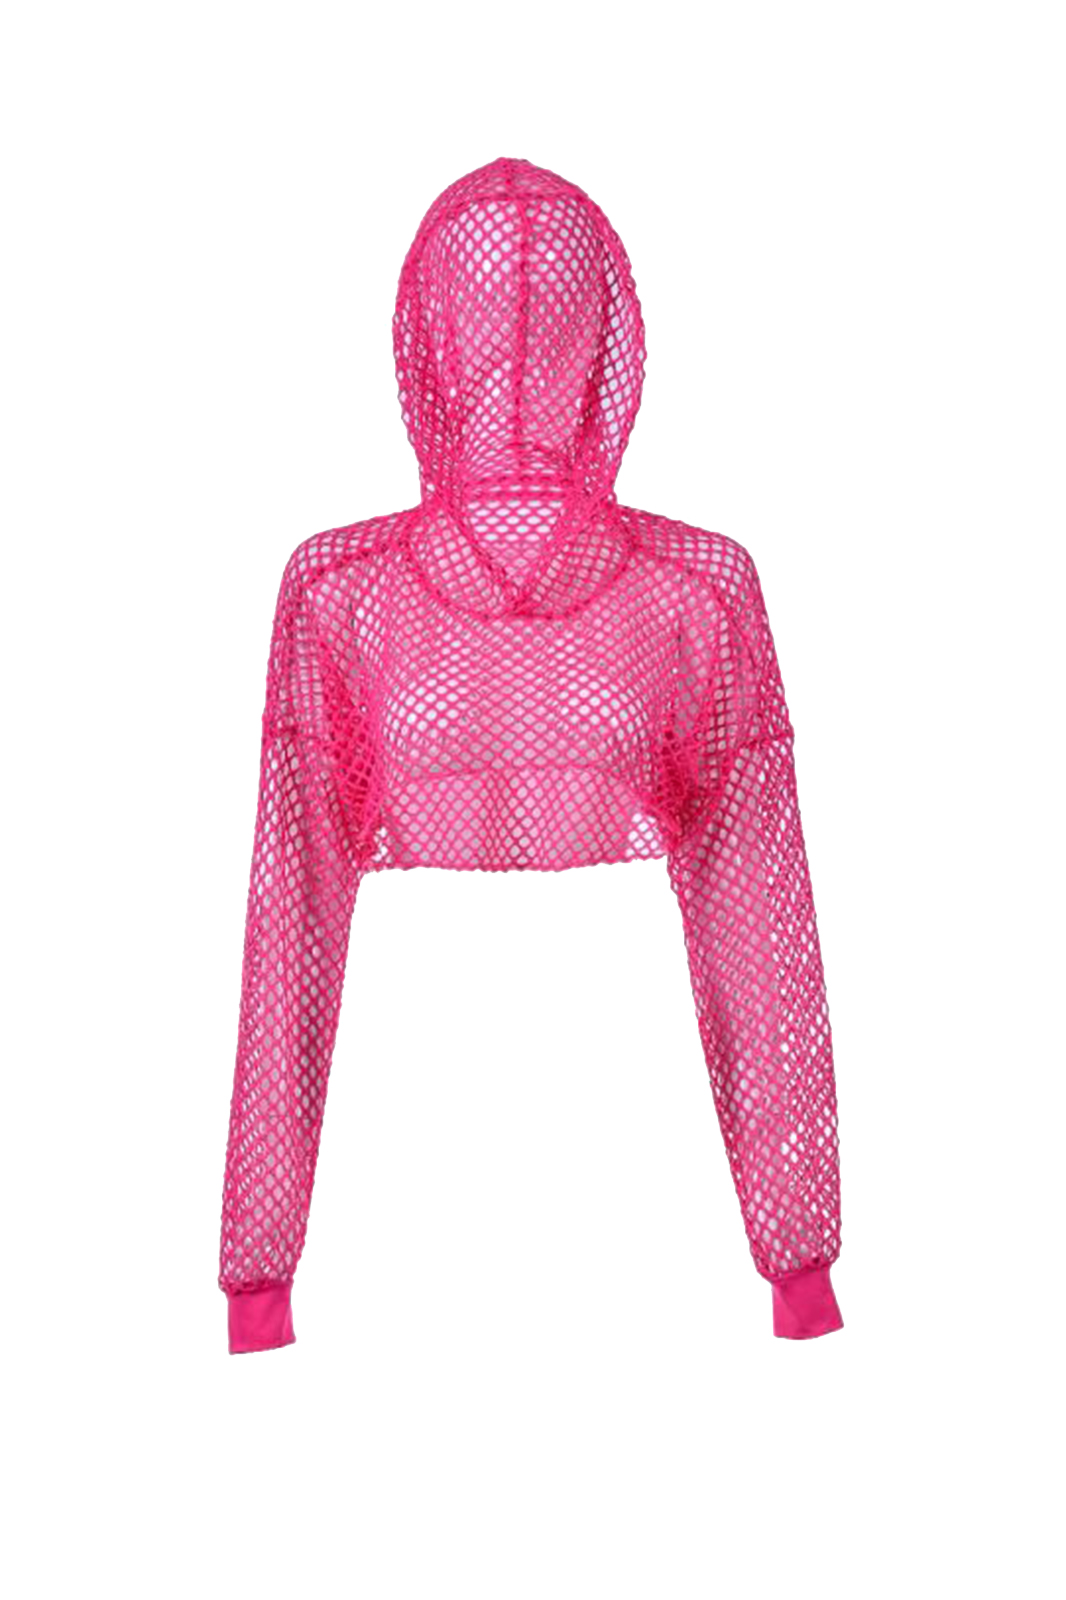 Big Net Hooded Top Pink